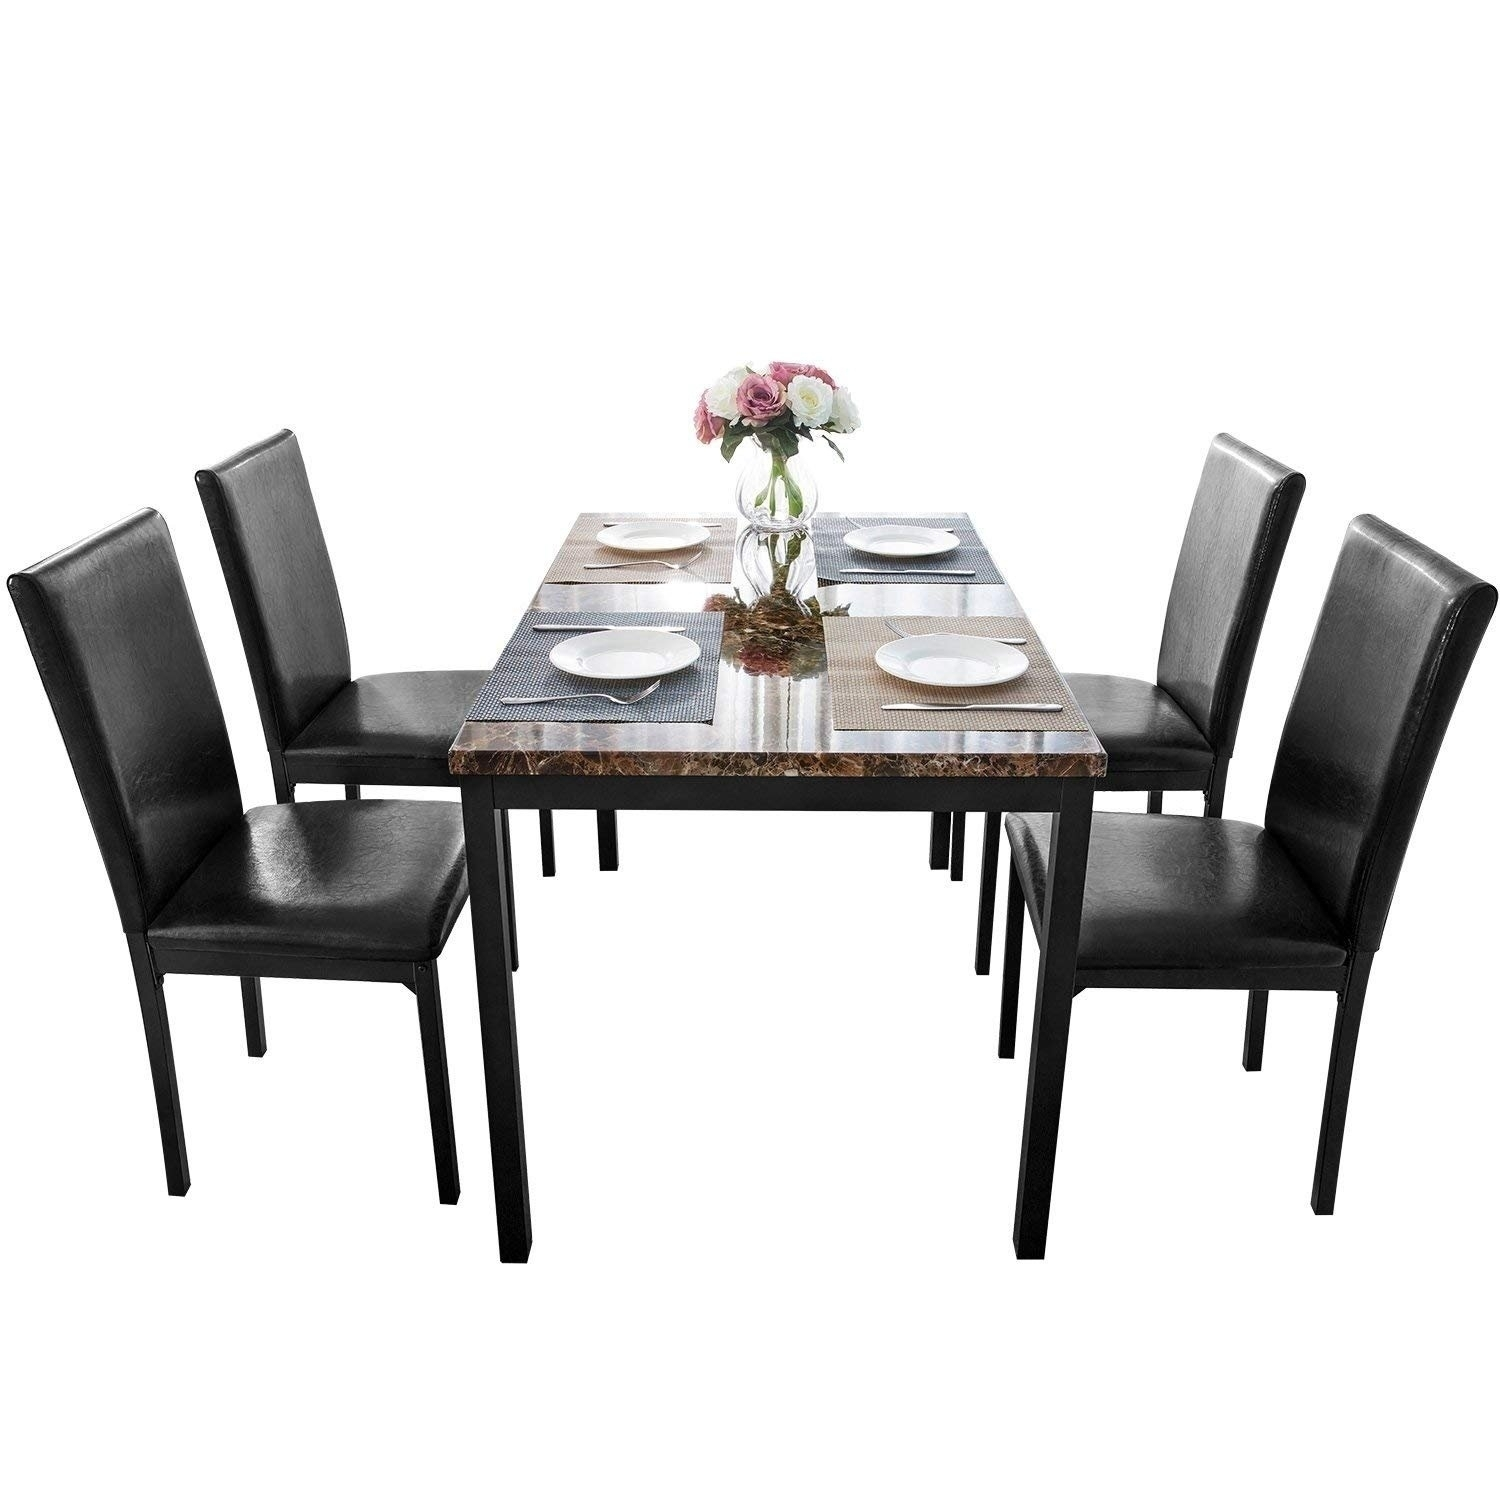 Shop Harper&bright Designs 5 Piece Faux Mable And Pu Leather Dining With Most Recently Released Harper 5 Piece Counter Sets (View 11 of 20)